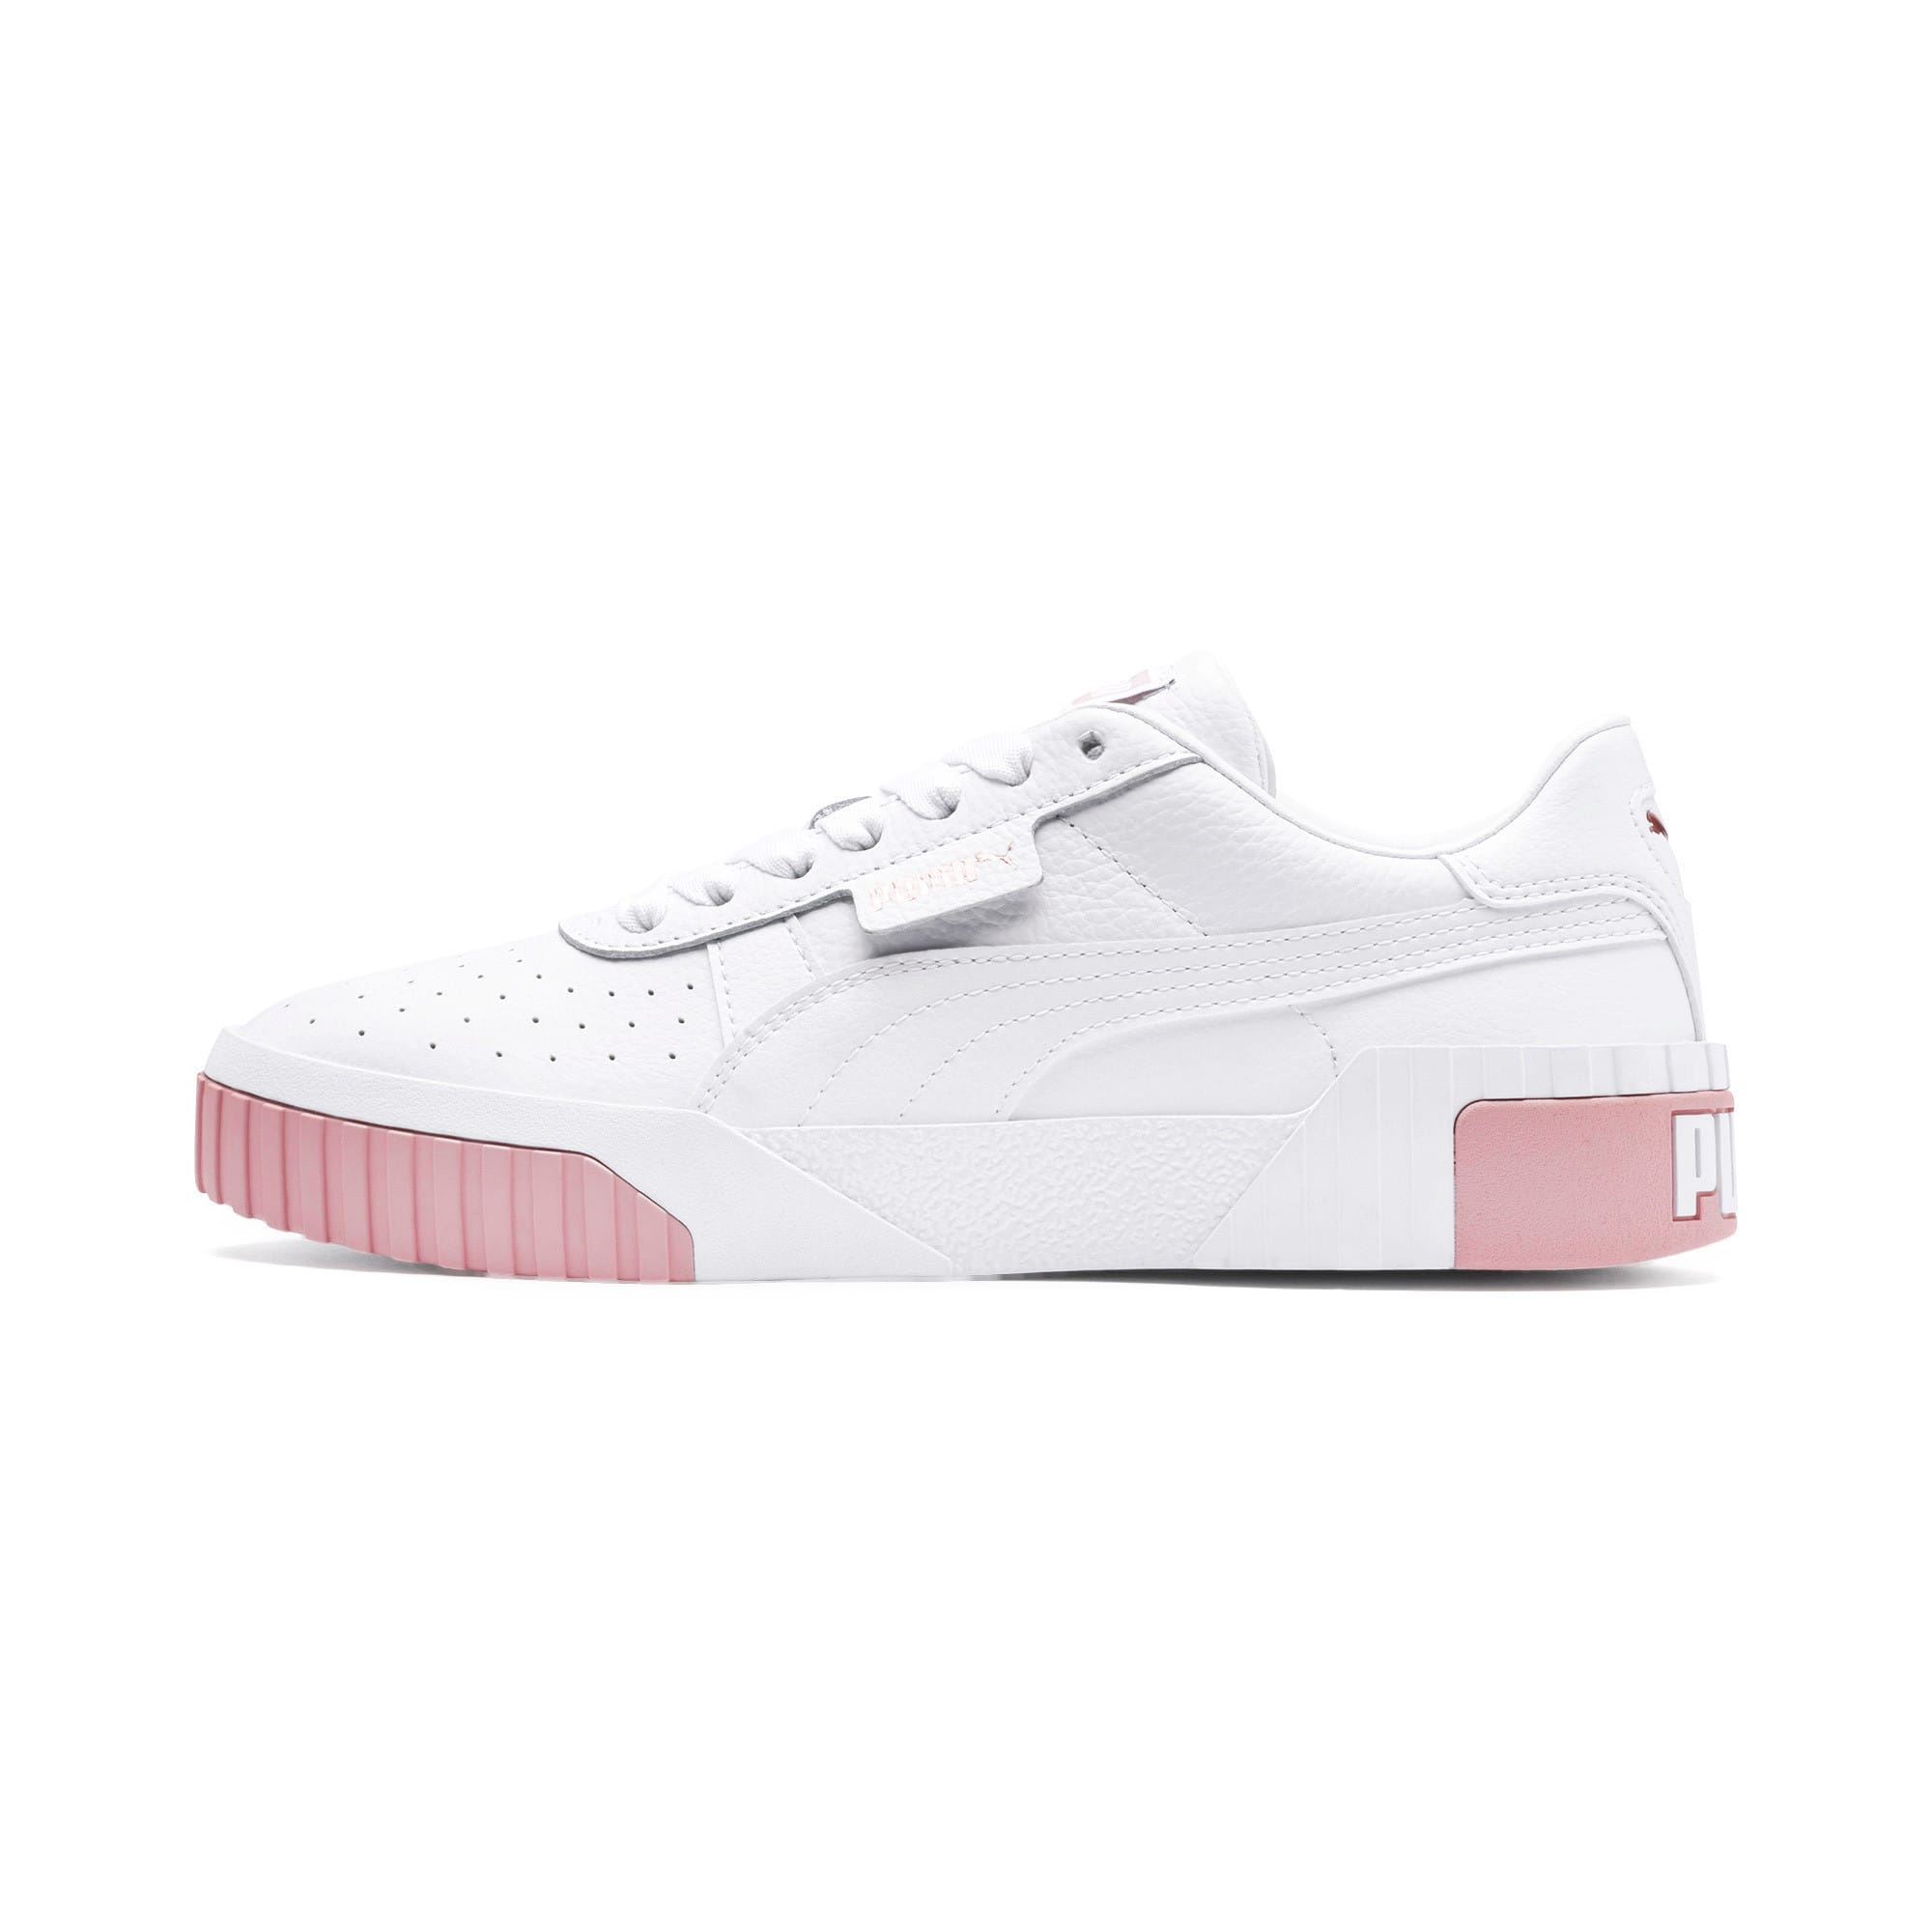 Thumbnail 1 of Cali Women's Trainers, Puma White-Rose Gold, medium-IND